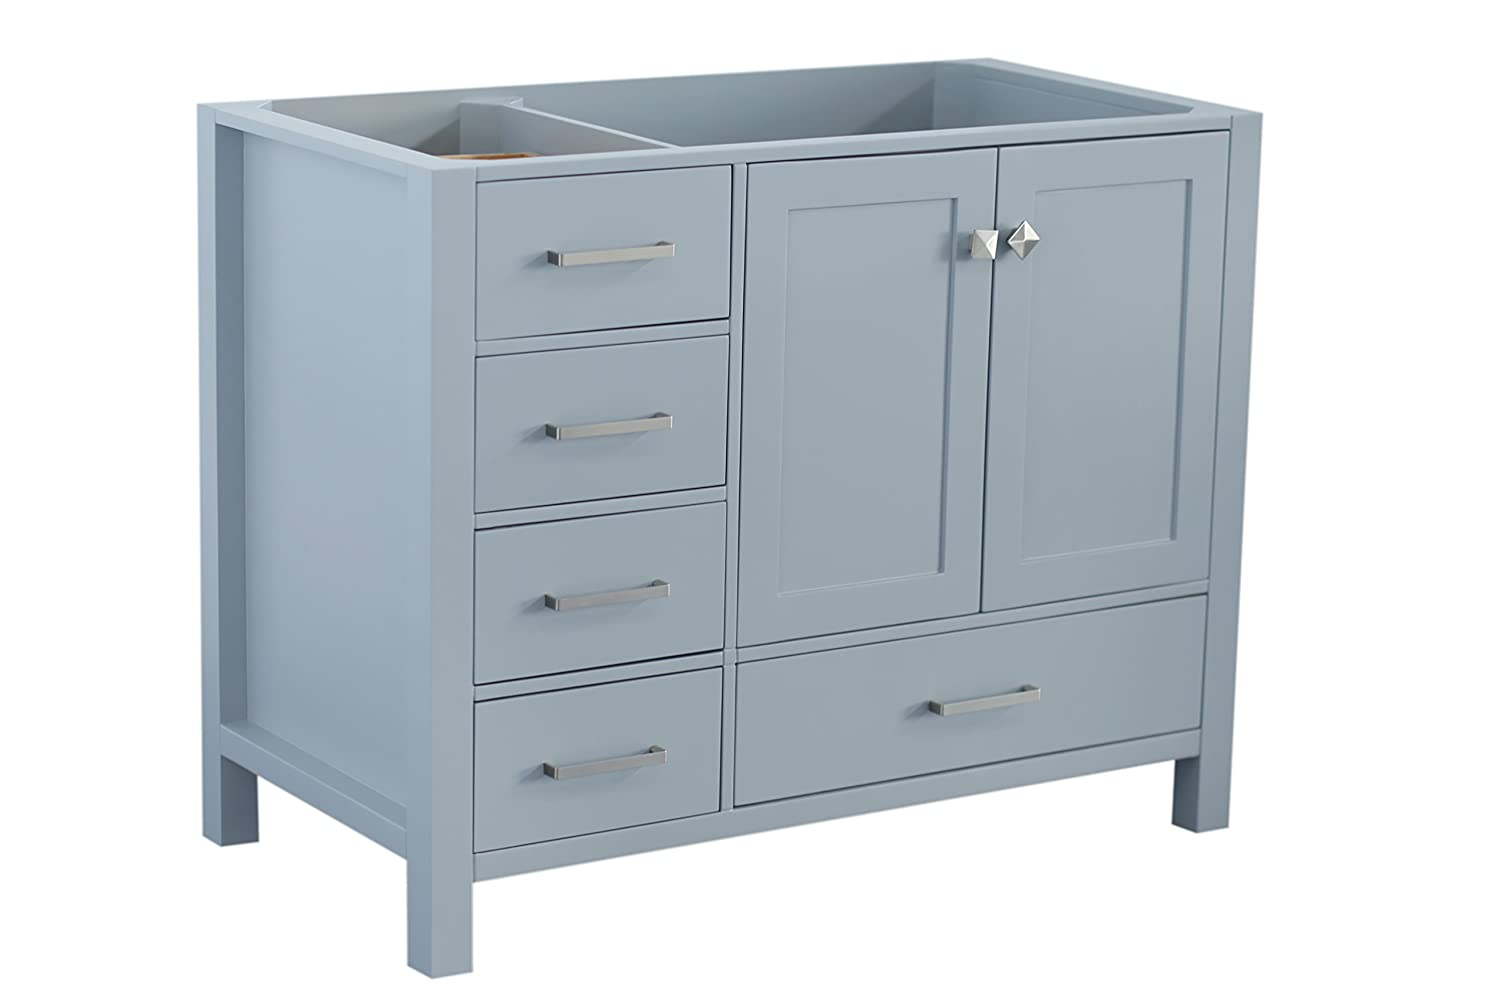 ARIEL Cambridge A043S-R-BC-GRY 42 Inch Single Right Offset Solid Wood Grey Bathroom Vanity Base Cabinet with Two Soft-Closing Doors and Five Self-Closing Drawers